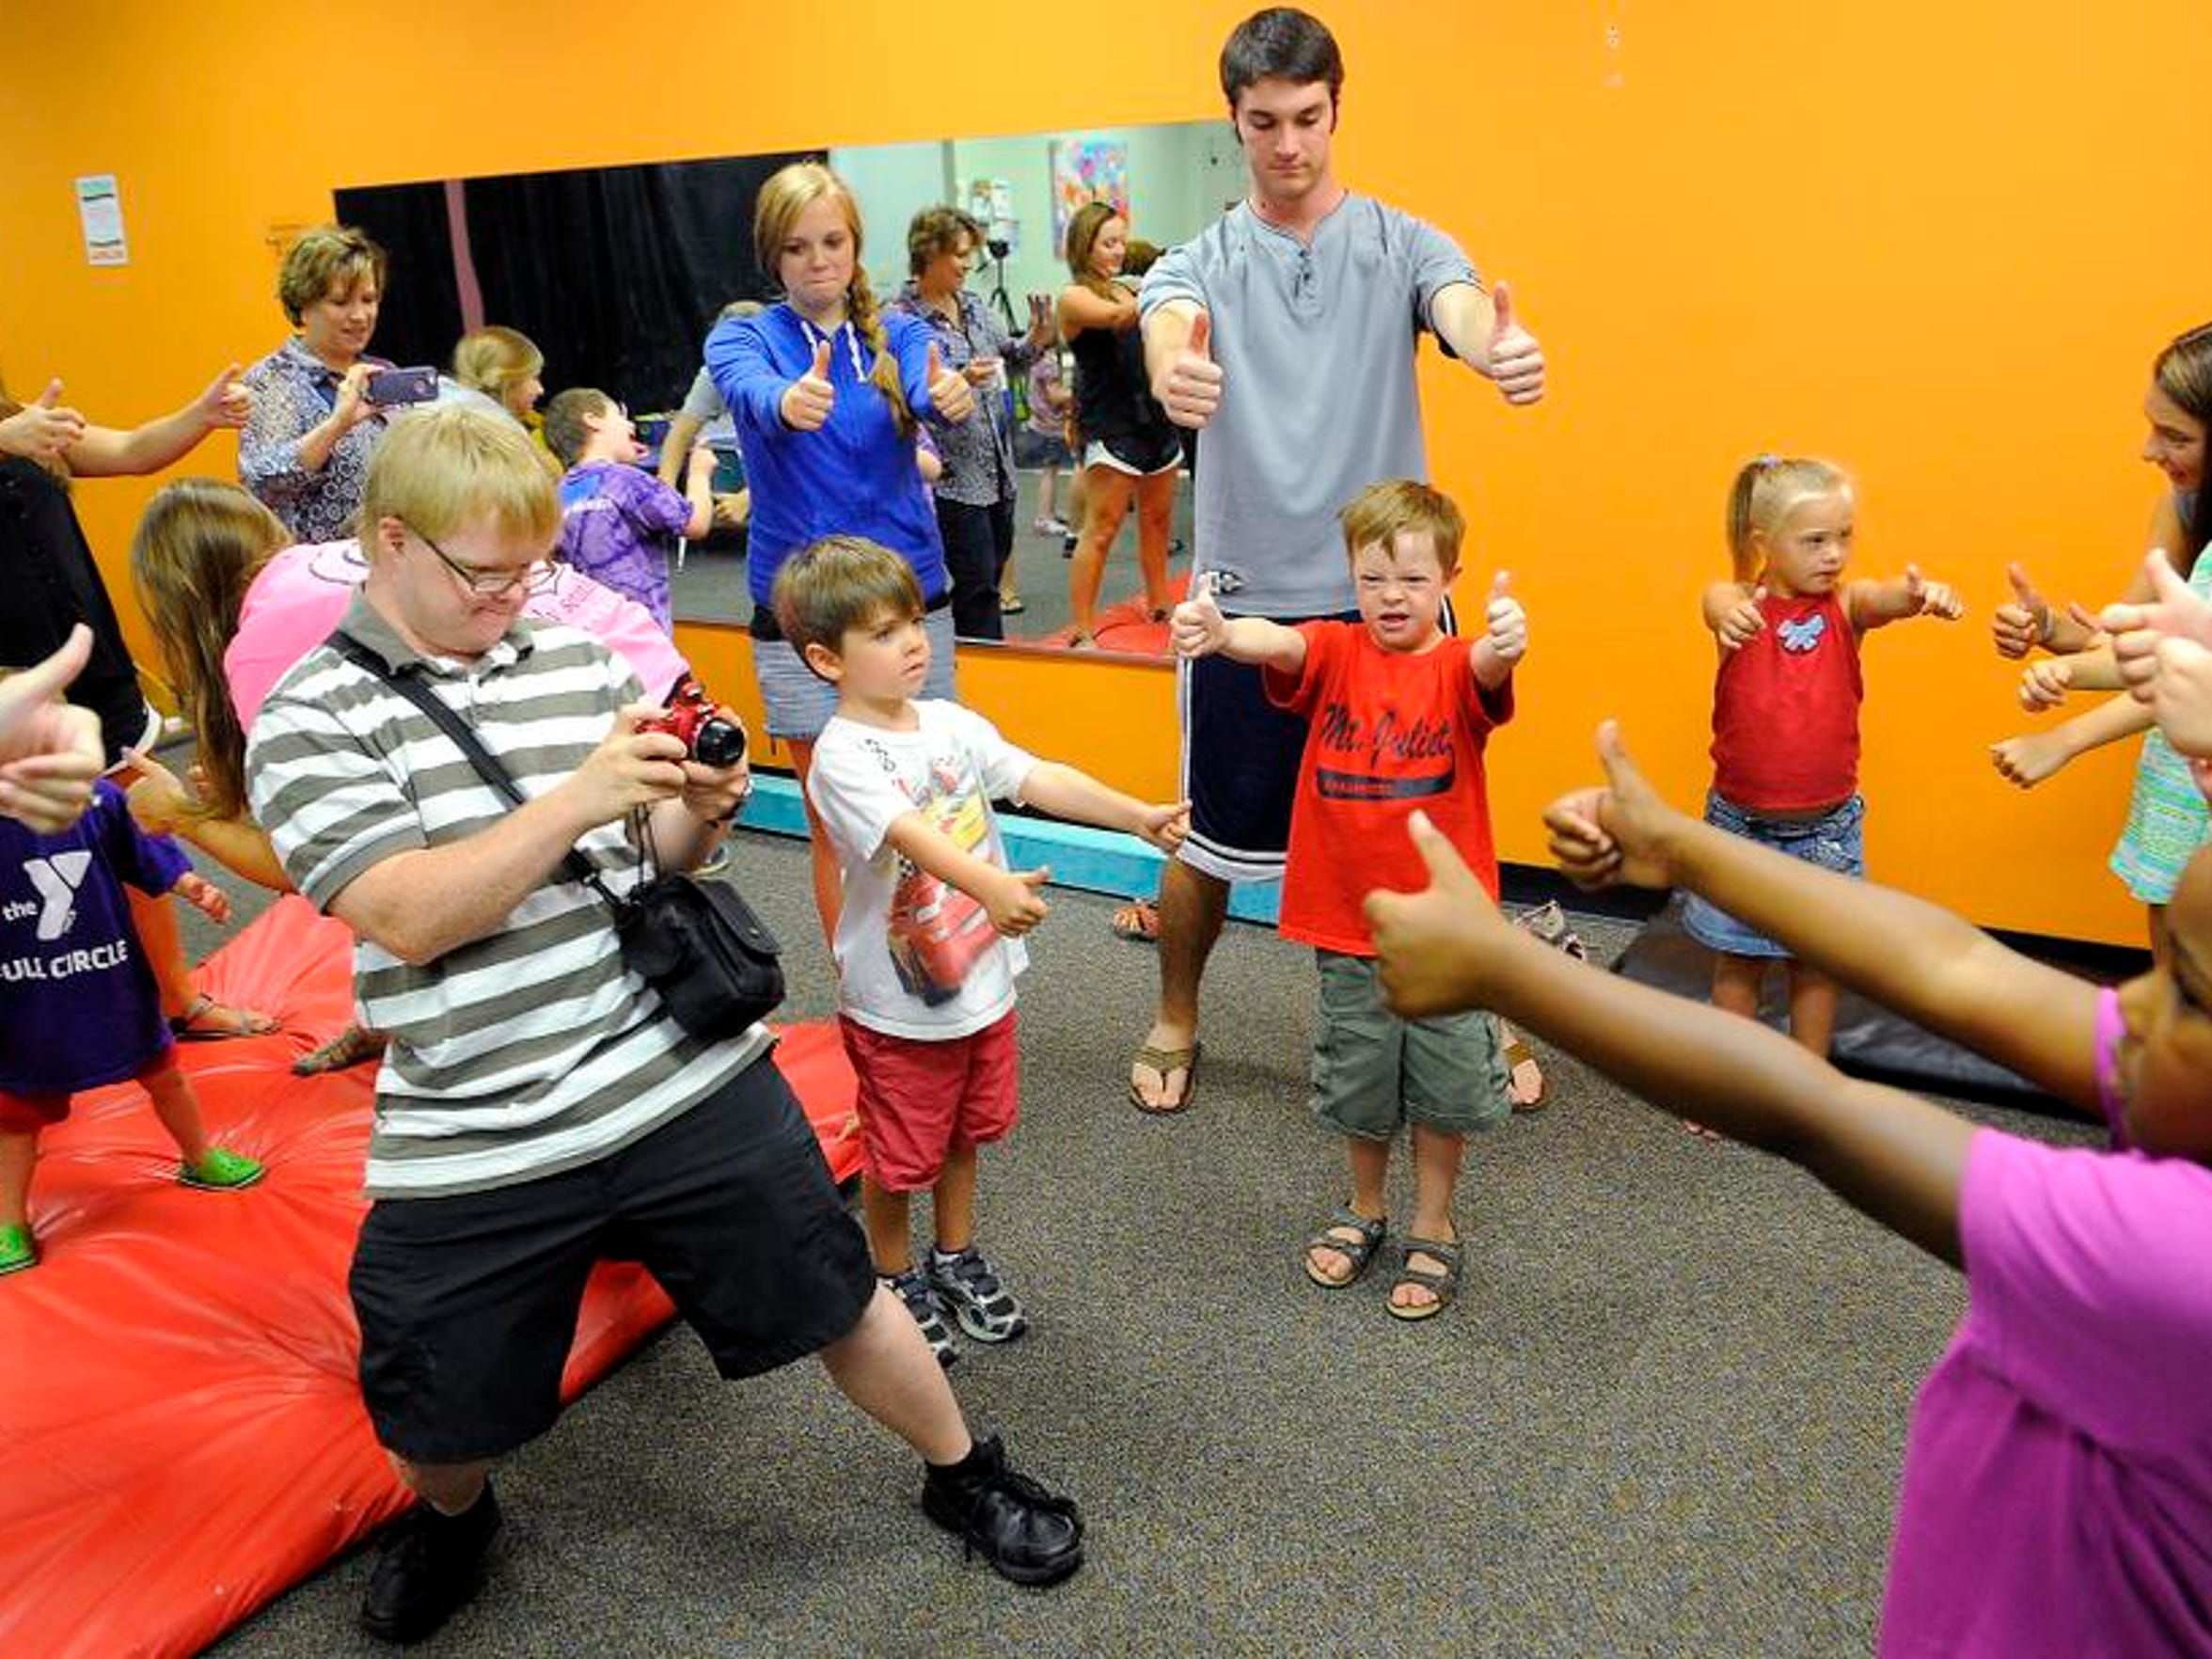 Wanting to be a photographer, Eric Wilson takes photos at DSAMT Friends Camp for Kids on Friday July 25, 2014, in Brentwood, TN.